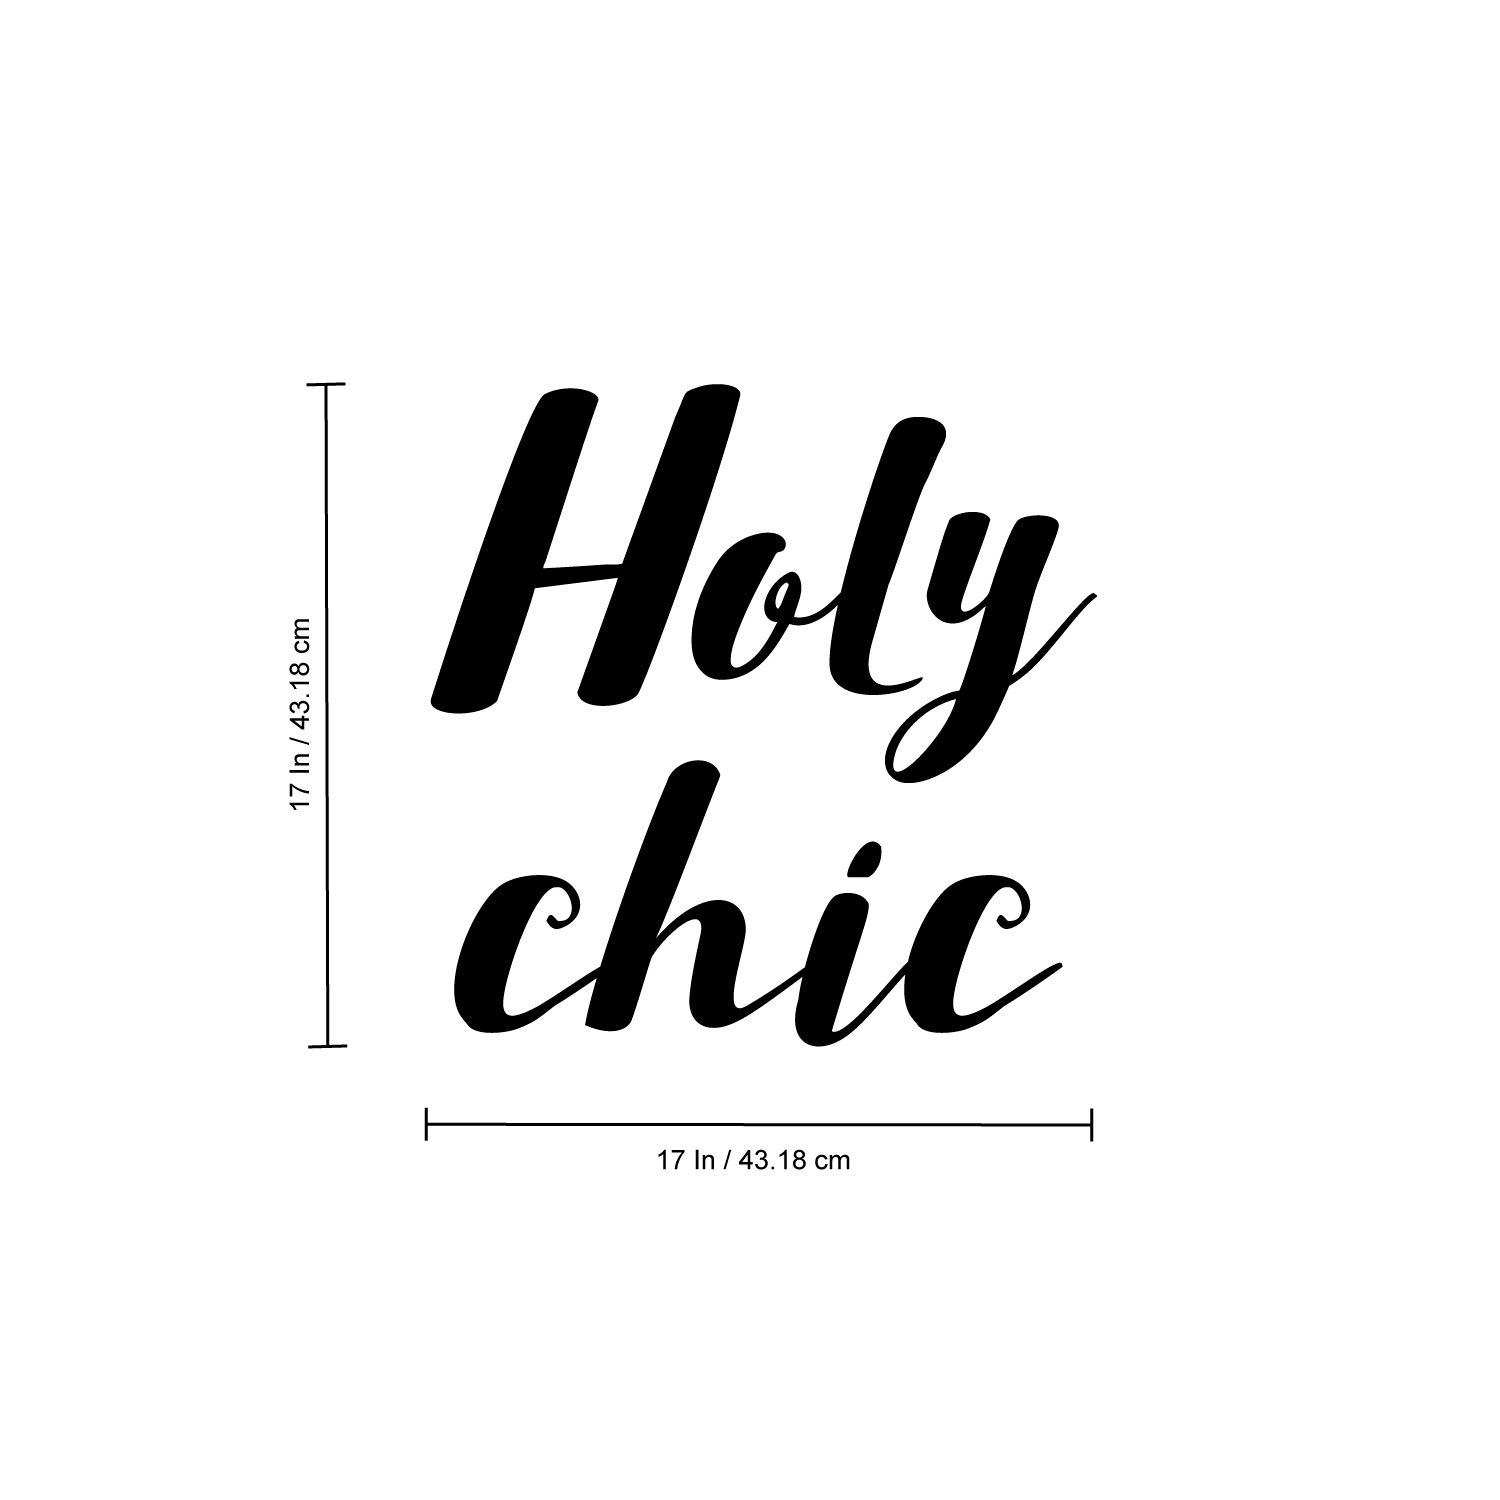 Trendy Womens Bedroom Living Room Office Modern Quotes 17 x 17 Holy Chic Vinyl Art Wall Decal Positive Fashion Mod Home Workplace Apartment Door Sticker Decals